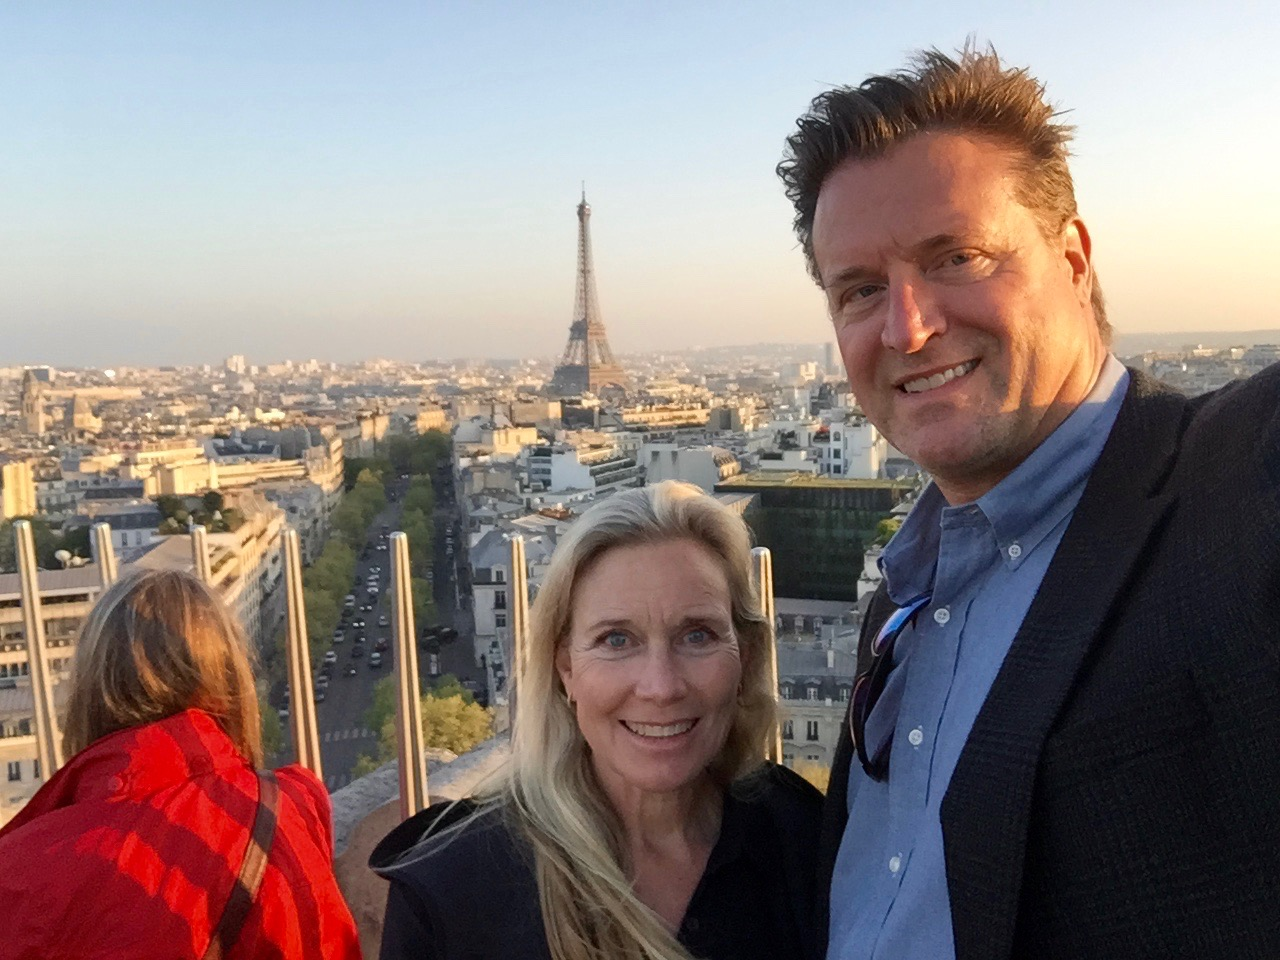 With bride on top of the Arc de Triomphe in Paris before consuming inordinate amounts of macarons and escargot, in that order.